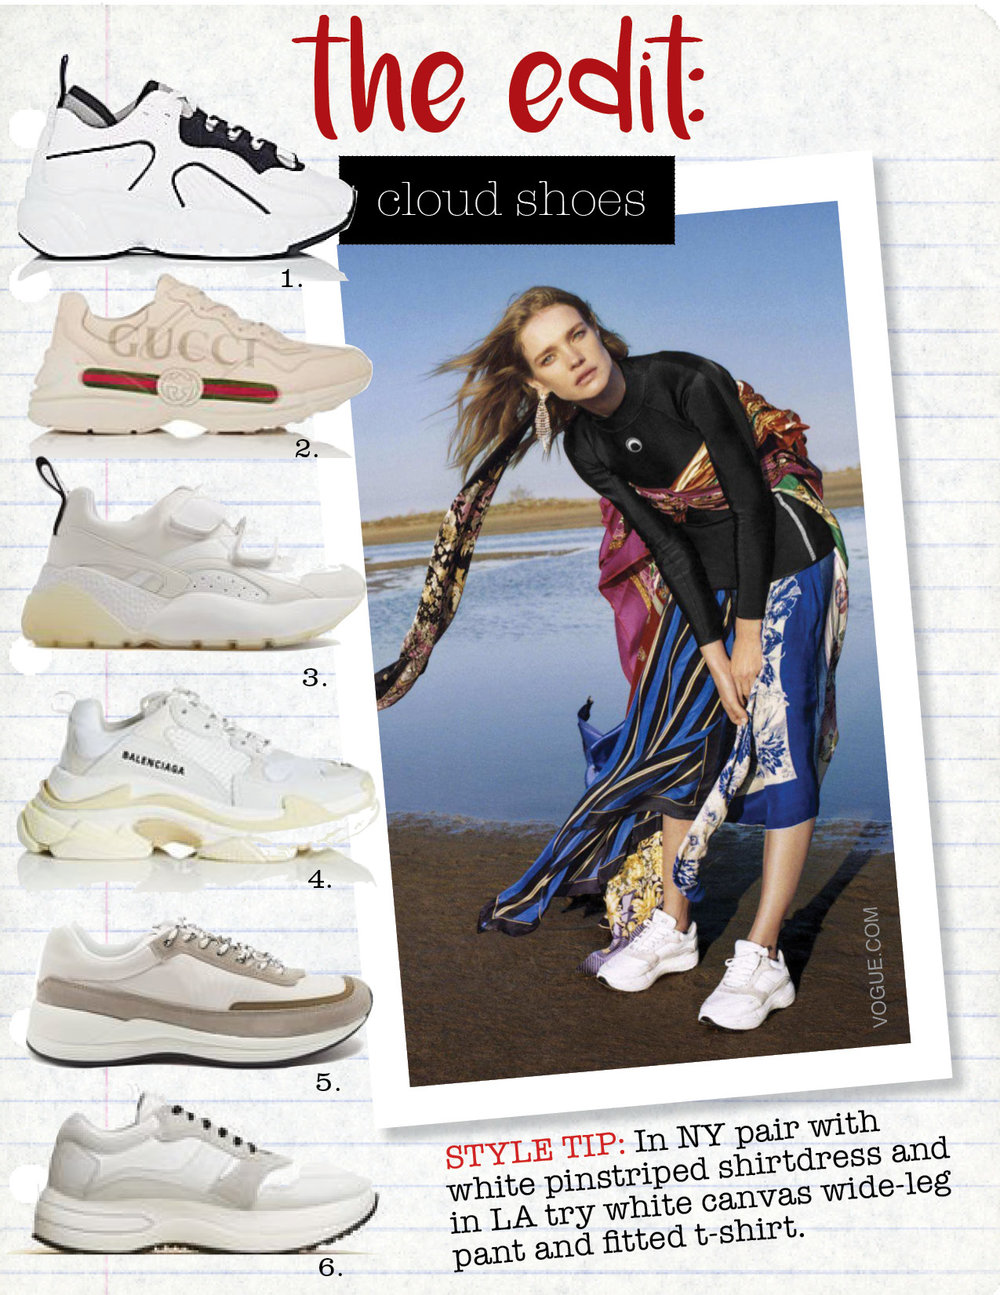 1. acne studios manhattan leather, suede and mesh sneakers, $470,  net-a-porter.com  2. gucci rhyton leather sneakers, $820,  barneys.com  3. stella mccartney eclypse low-top contrast-panel trainers, $685,  matchesfashion.com  4. balenciaga women's triple s leather & mesh sneakers, $895,  barneys.com  5. a.p.c. running suede-panel shell trainers, $310,  matchesfashion.com  6. celine delivery running sneaker in calfskin, $880,  celine.com